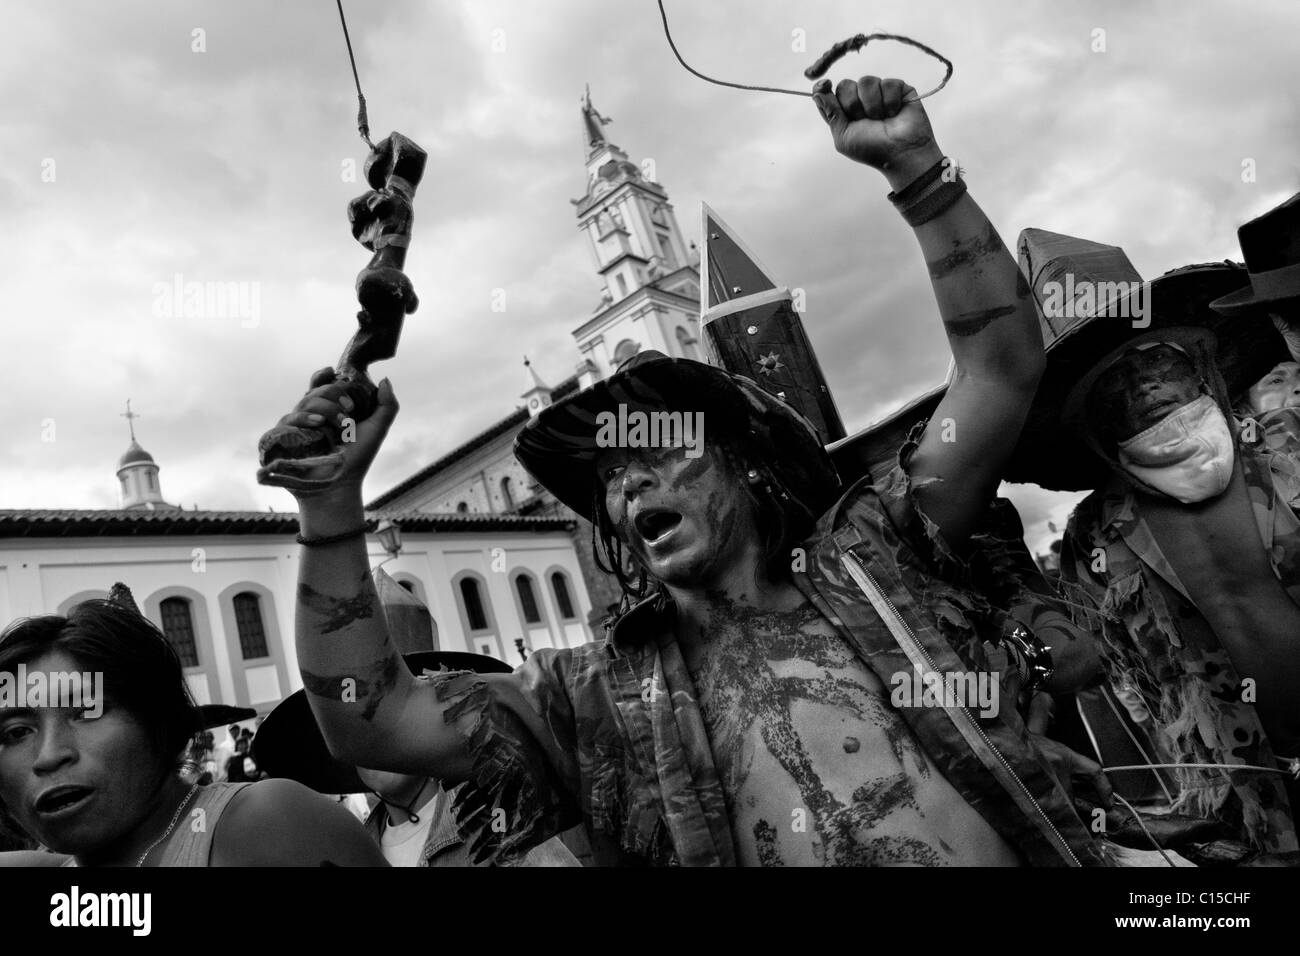 Indians, wearing military camouflage, dance furiously during the Inti Raymi (San Juan) festivities in Cotacachi, - Stock Image